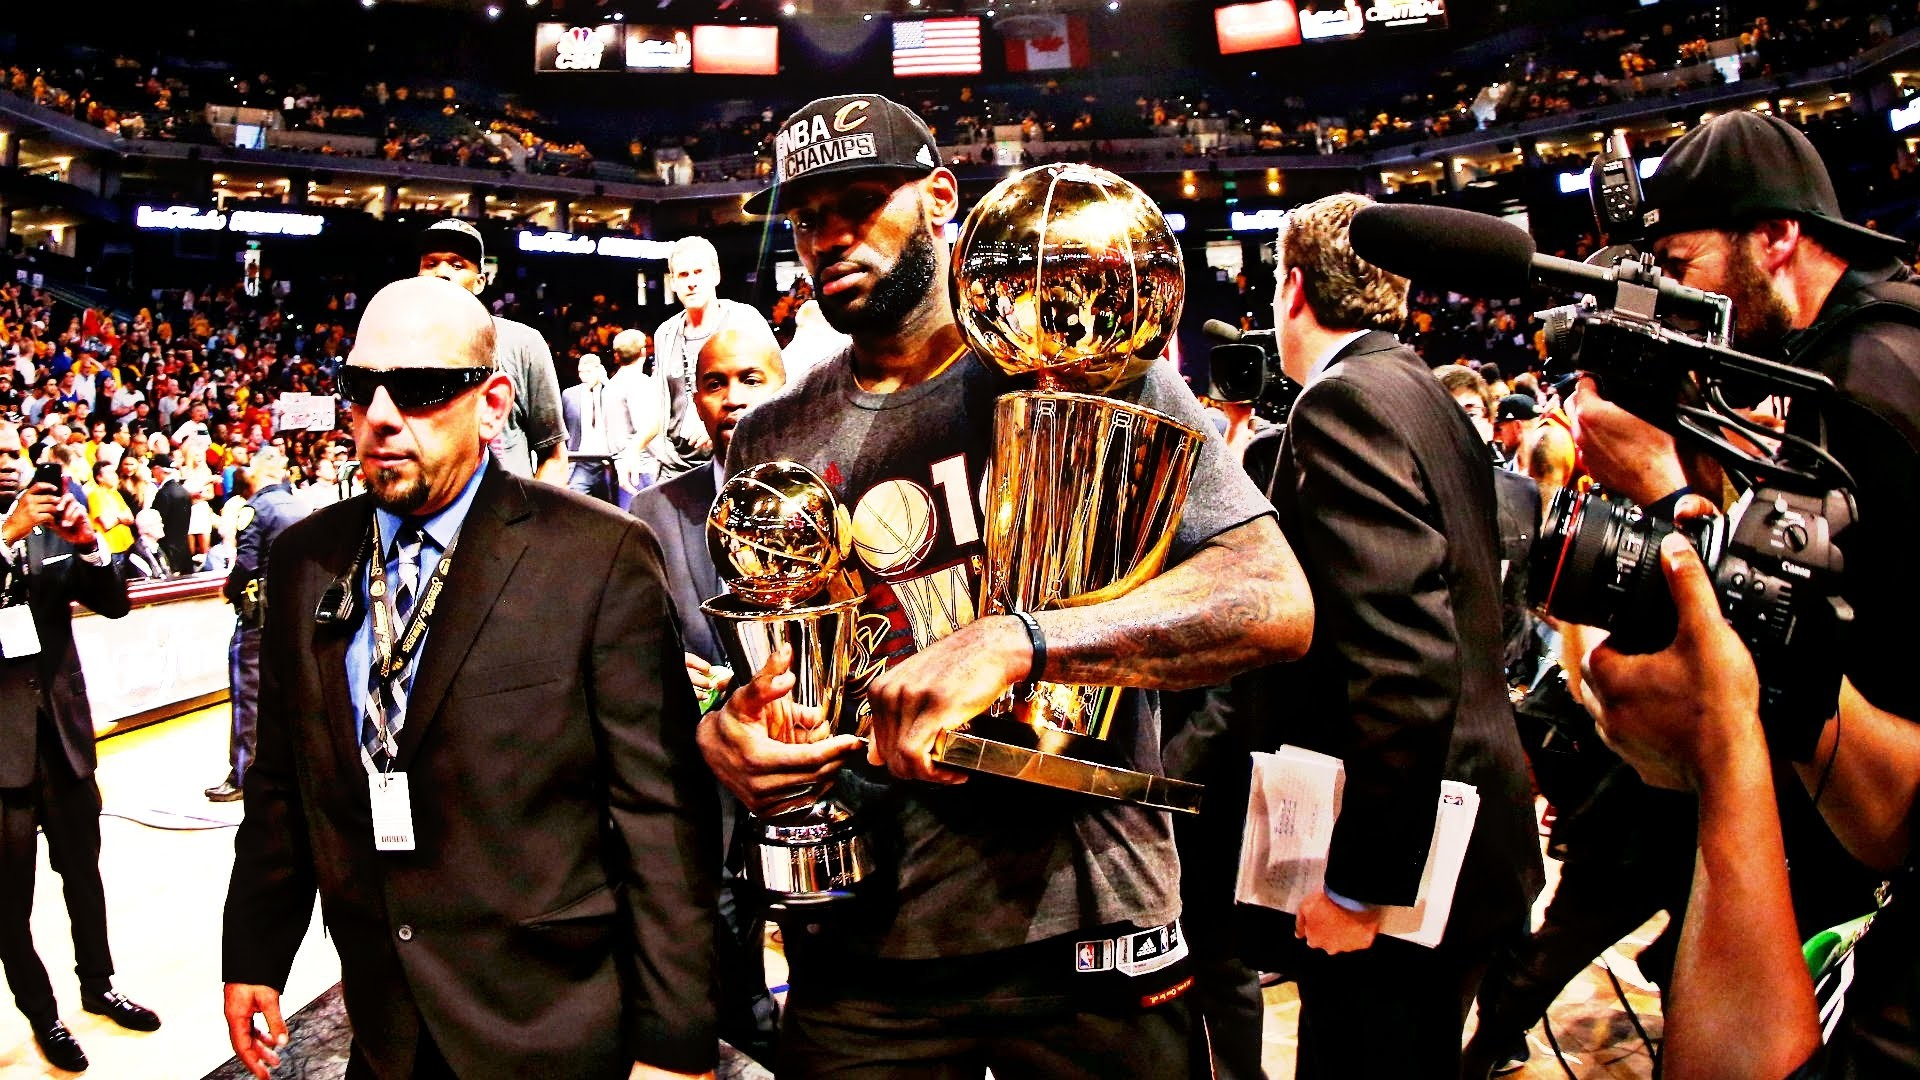 Res: 1920x1080, LeBron James - CLEVELAND, THIS IS FOR YOU! á´´á´° (2016 NBA Champion Mix) -  YouTube